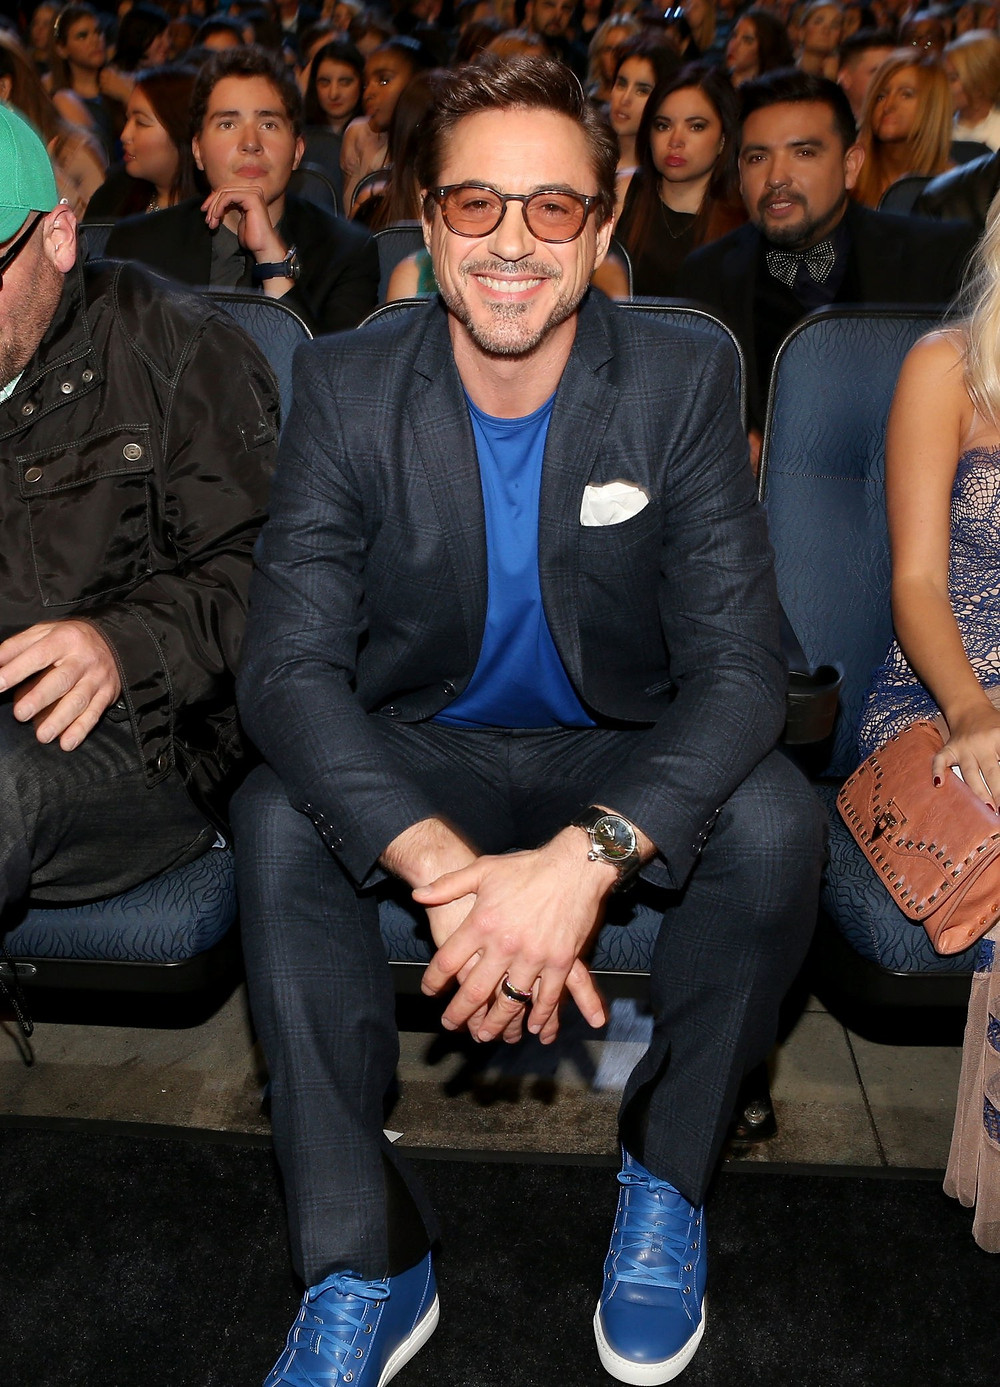 Robert Downey Jr. in matching blue tee and high top sneakers for the People's Choice Awards in 2015. Styled by Jeanne Yang.